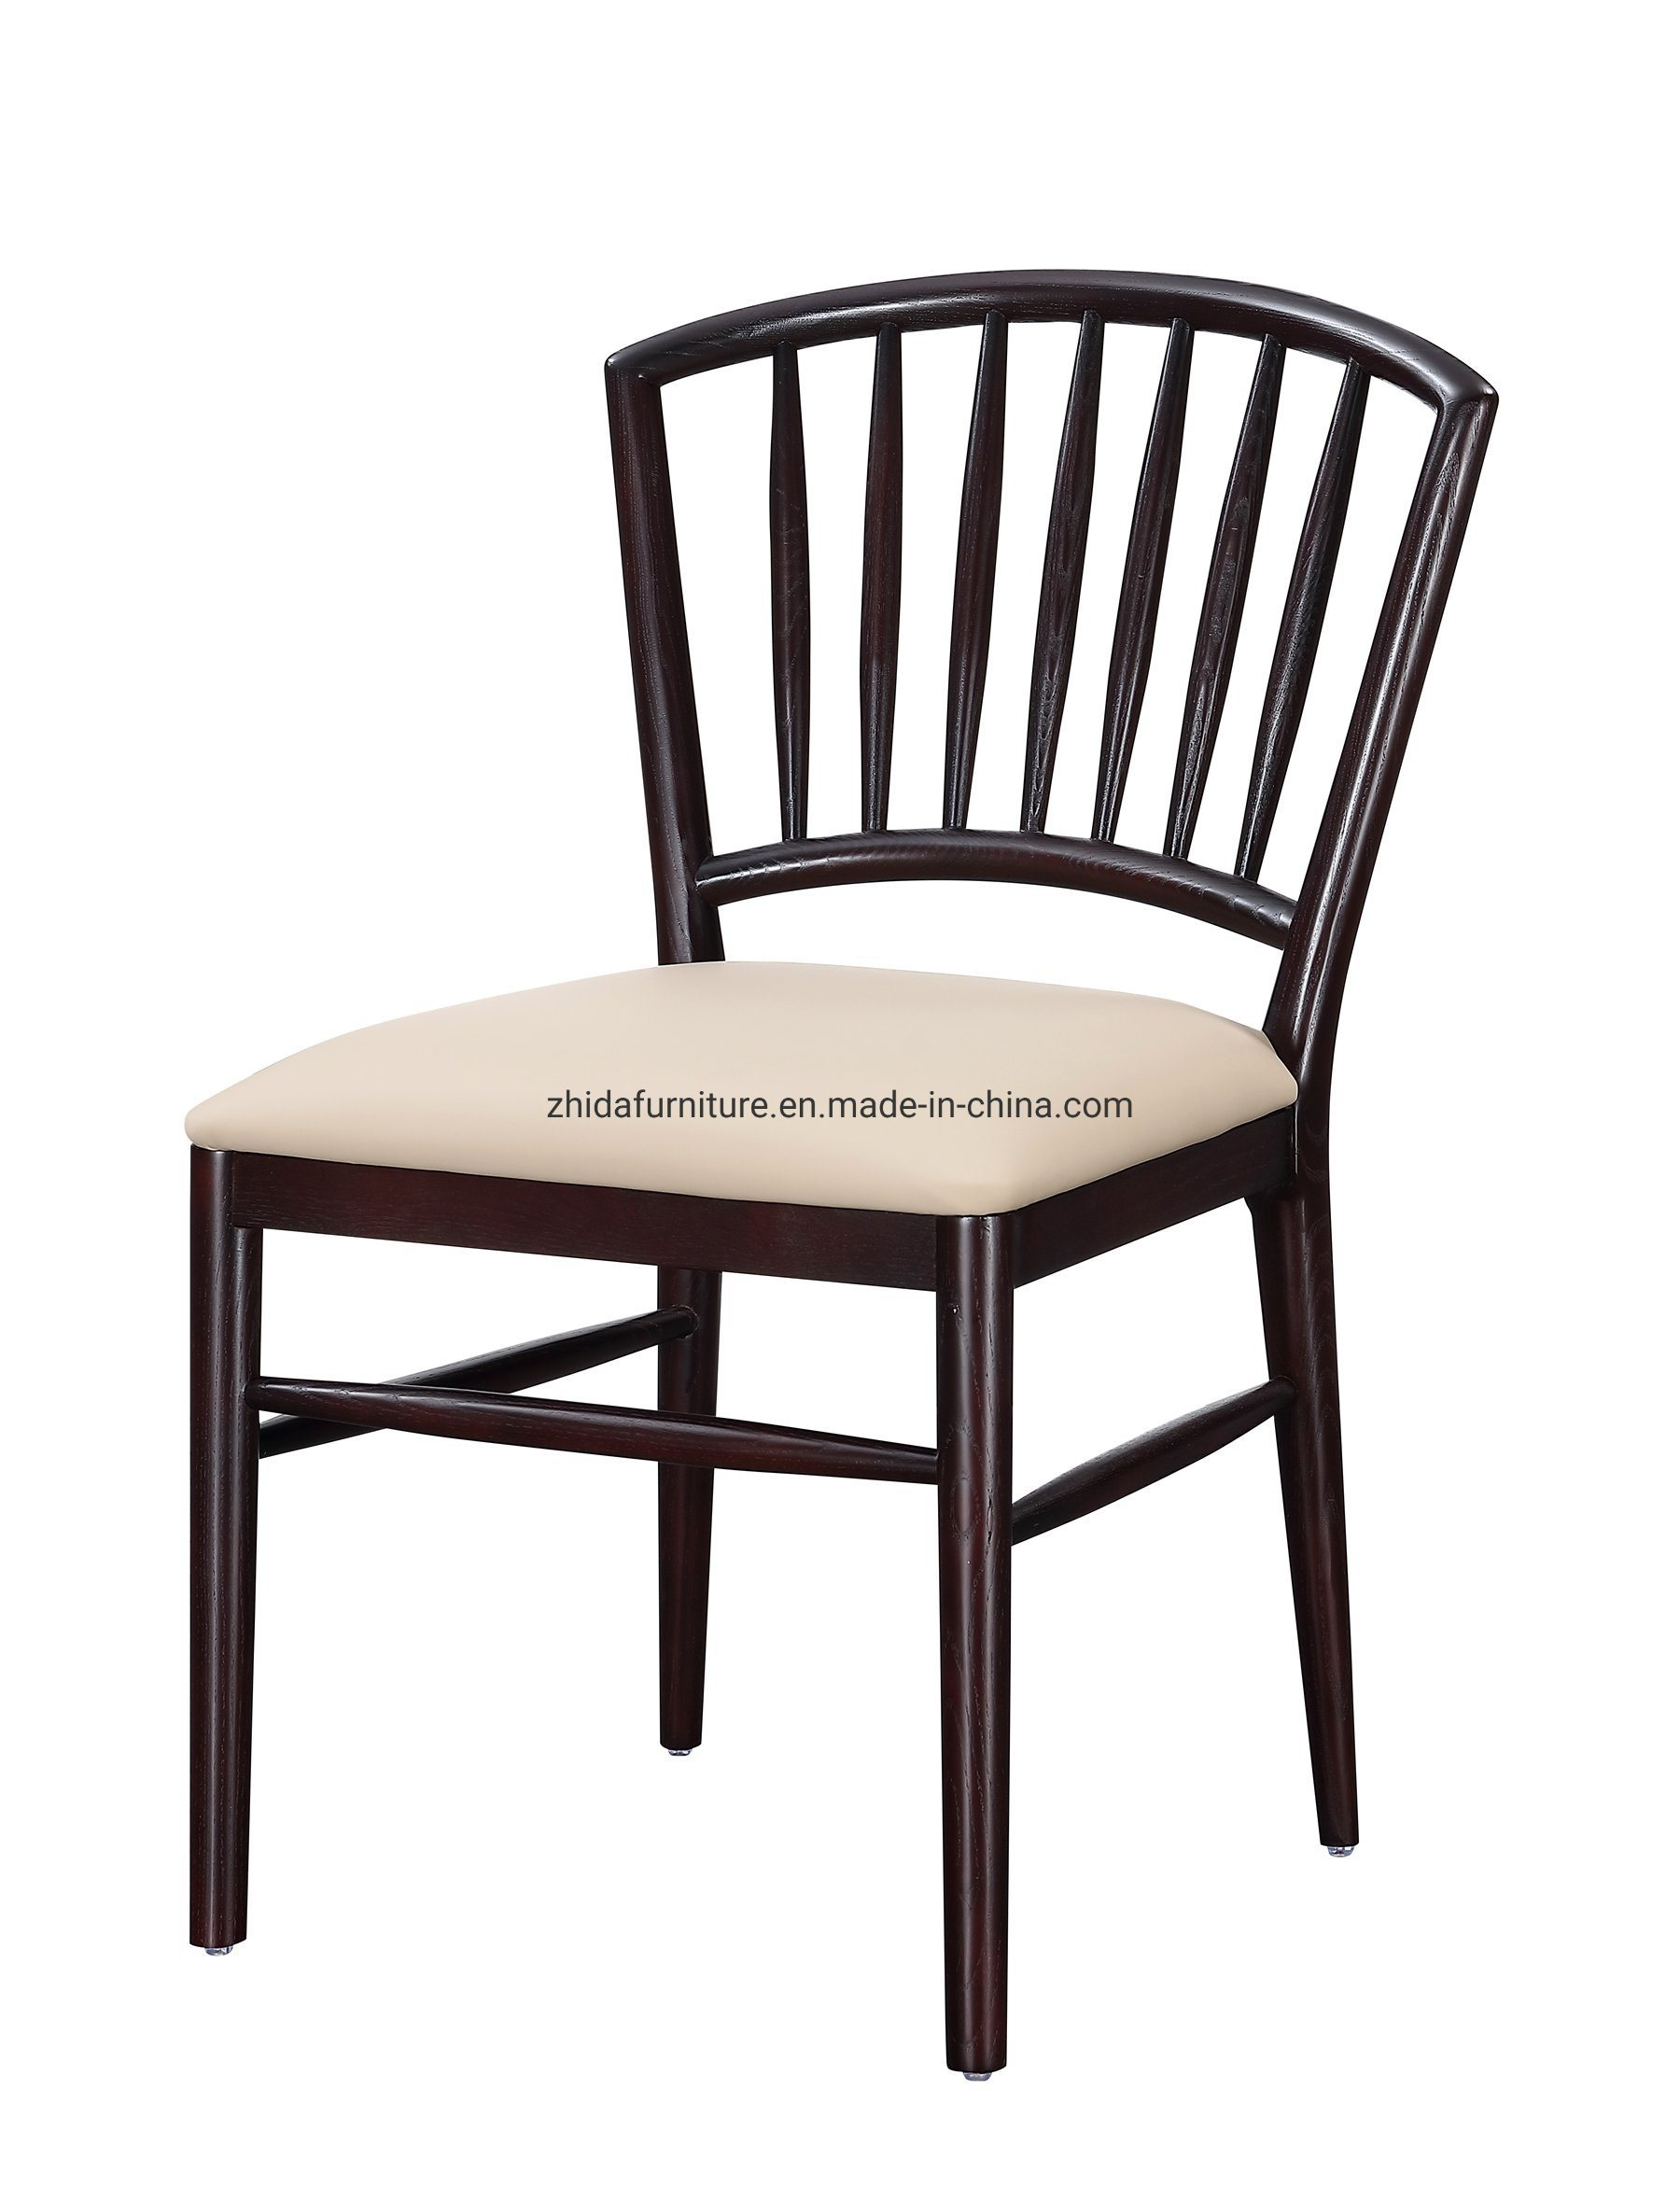 China Modern Design Solid Wood Table Chair For Dining Room Hotel Restaurant Cafe Coffee Shop China Modern Furniture Restaurant Chair